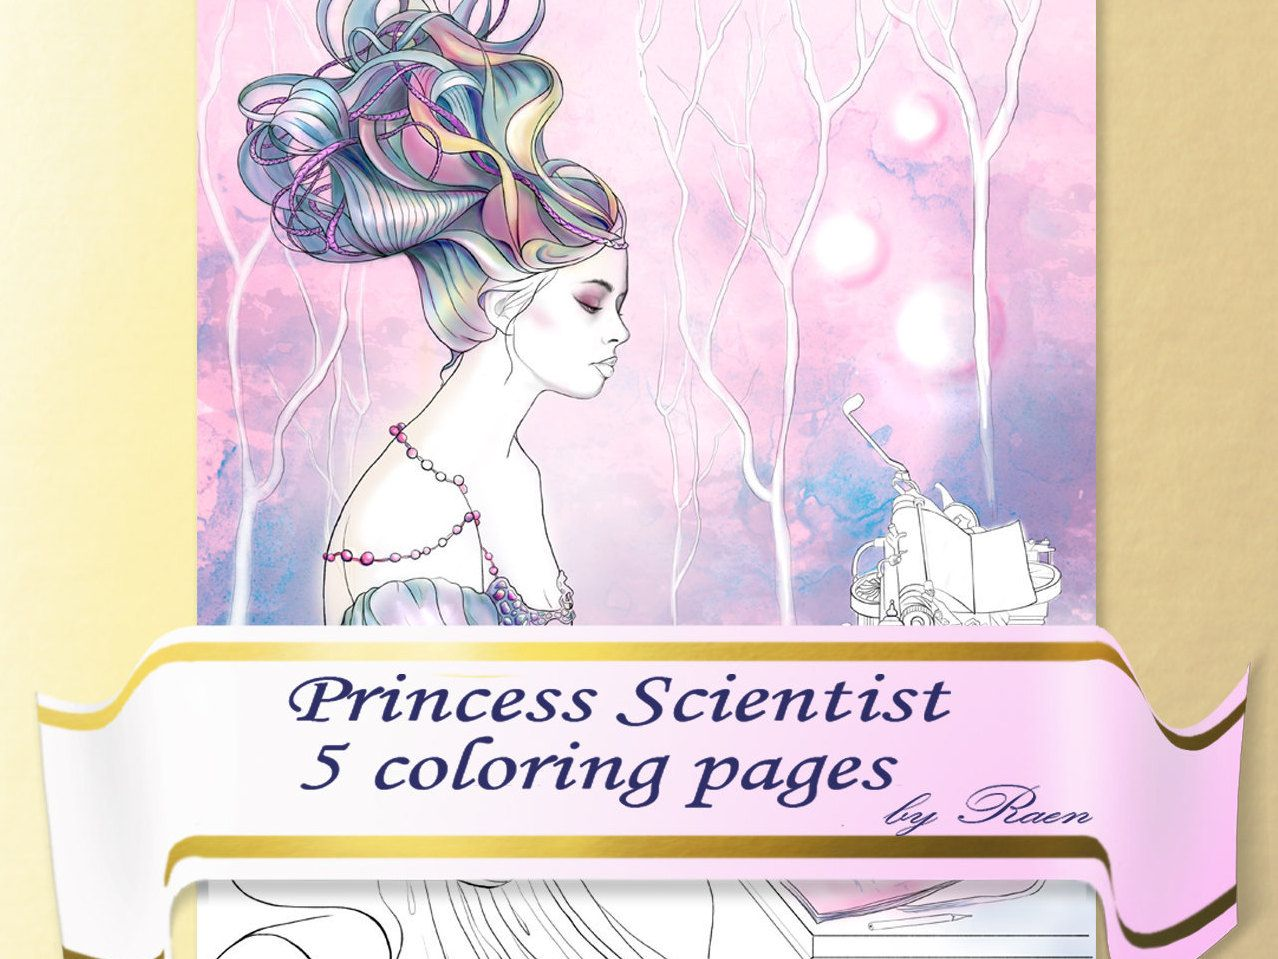 Princess Scientists Coloring Book for Adults, Coloring Pages ...